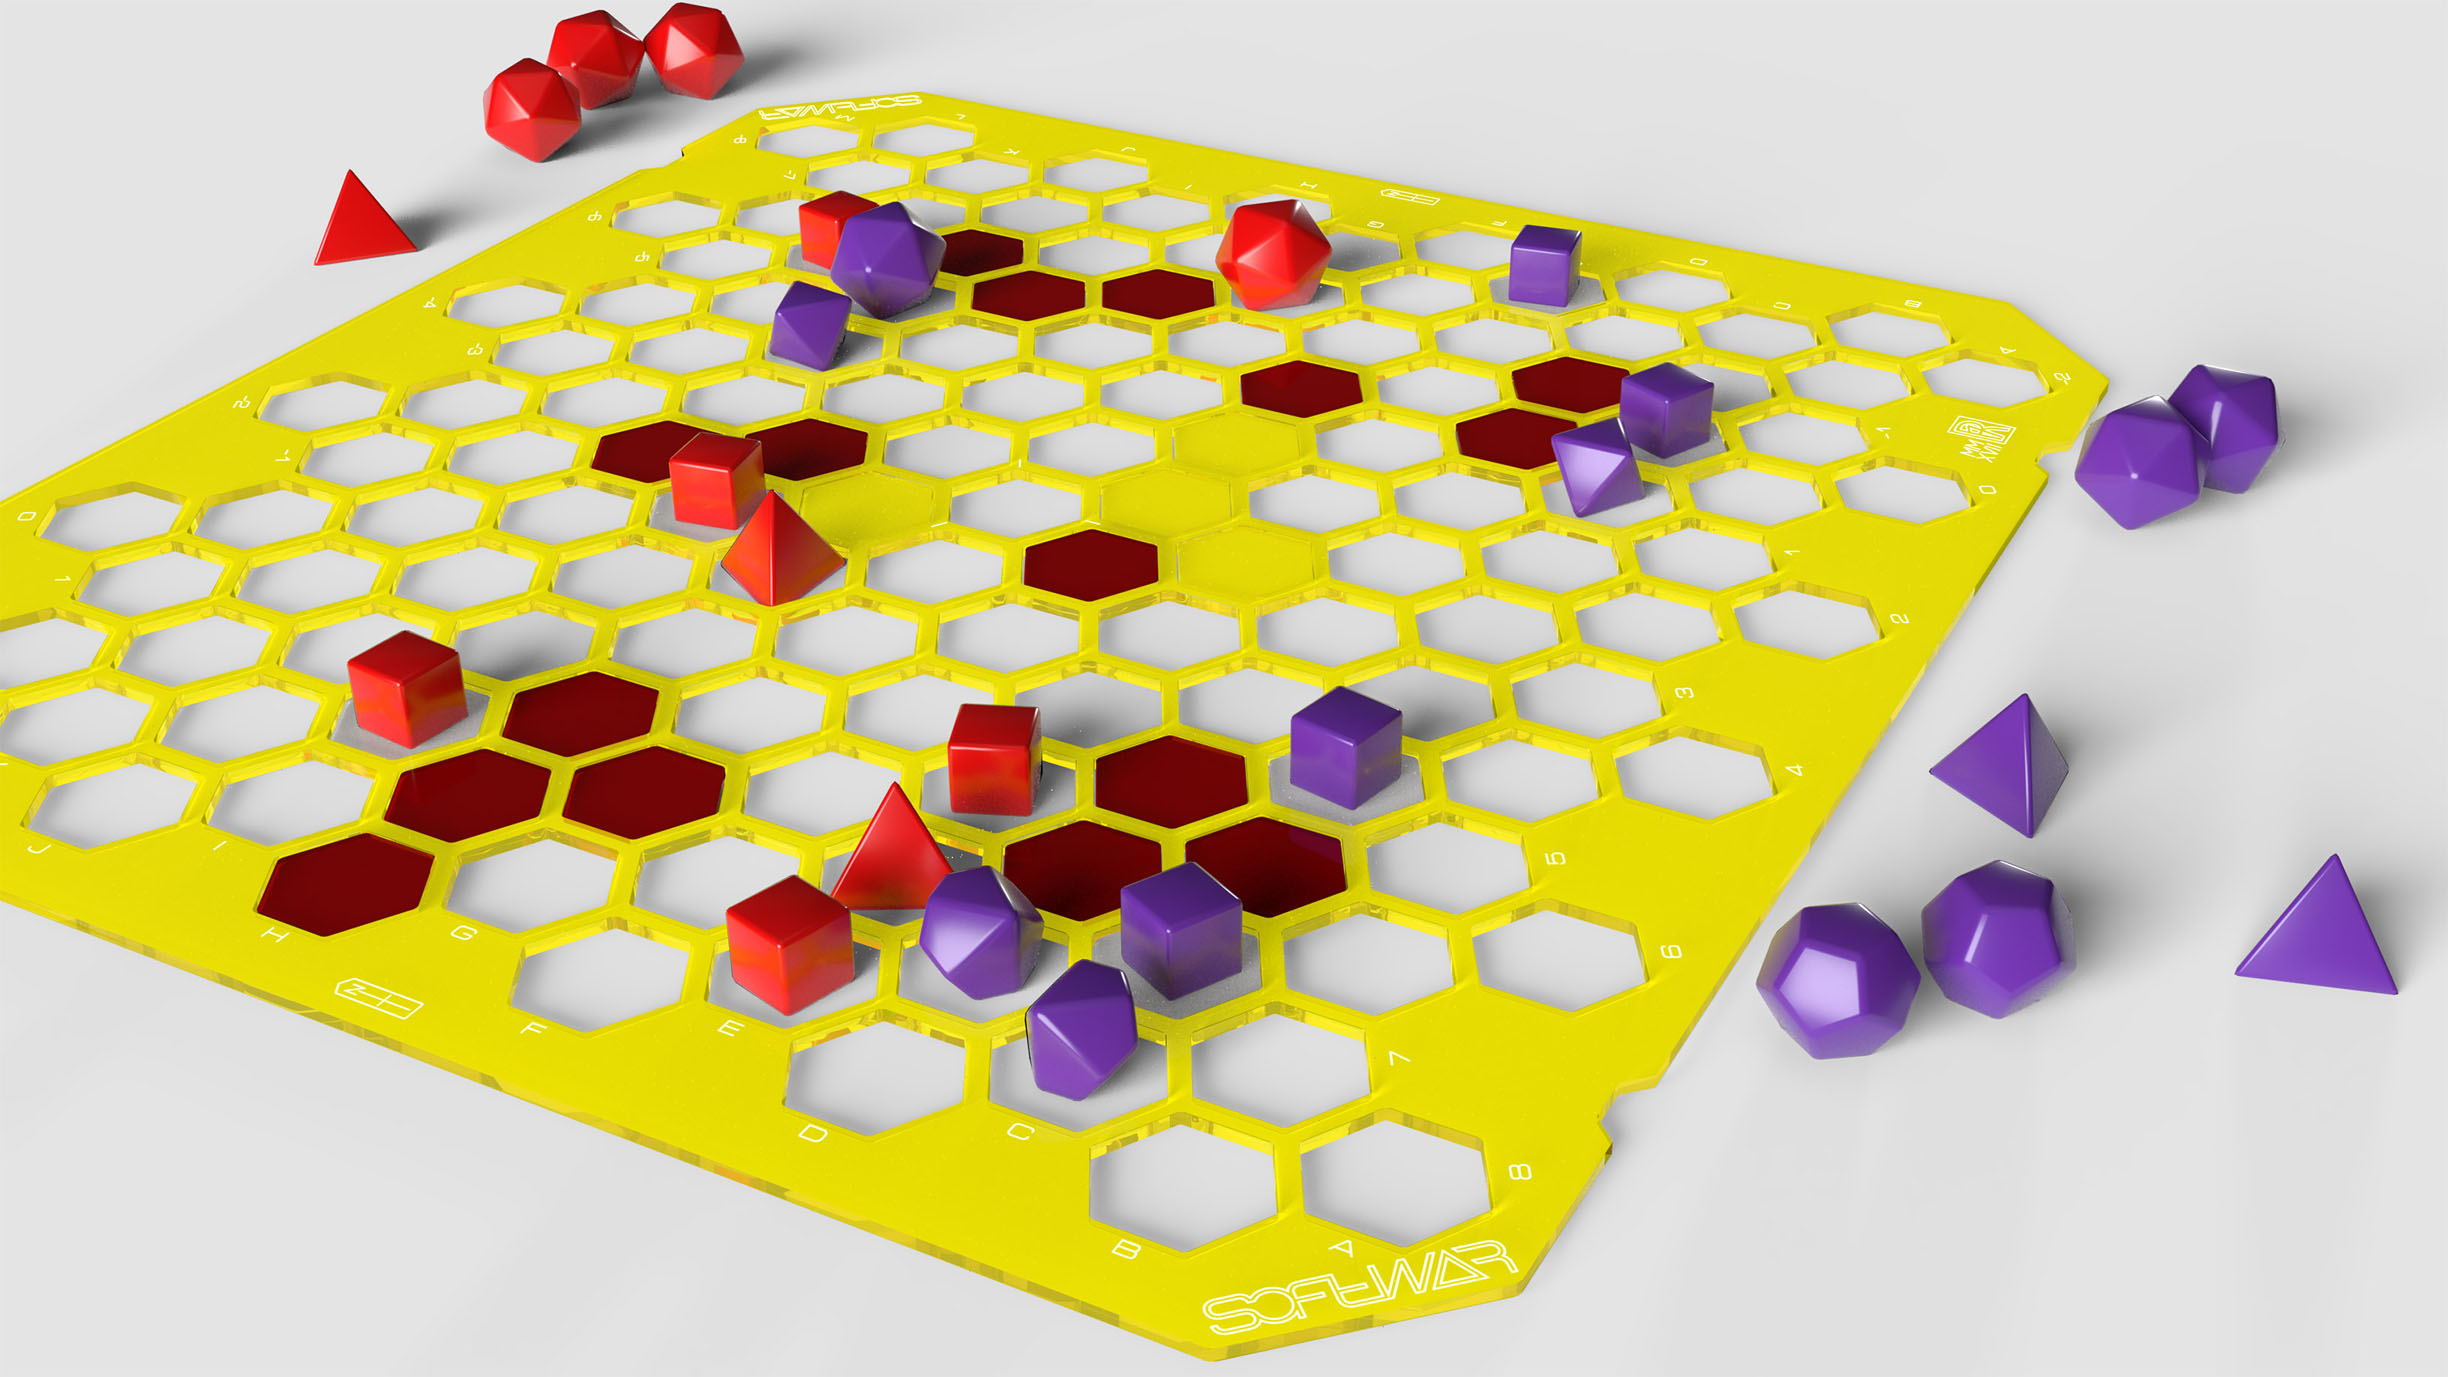 Yellow with Red tiles | Red and Purple dice